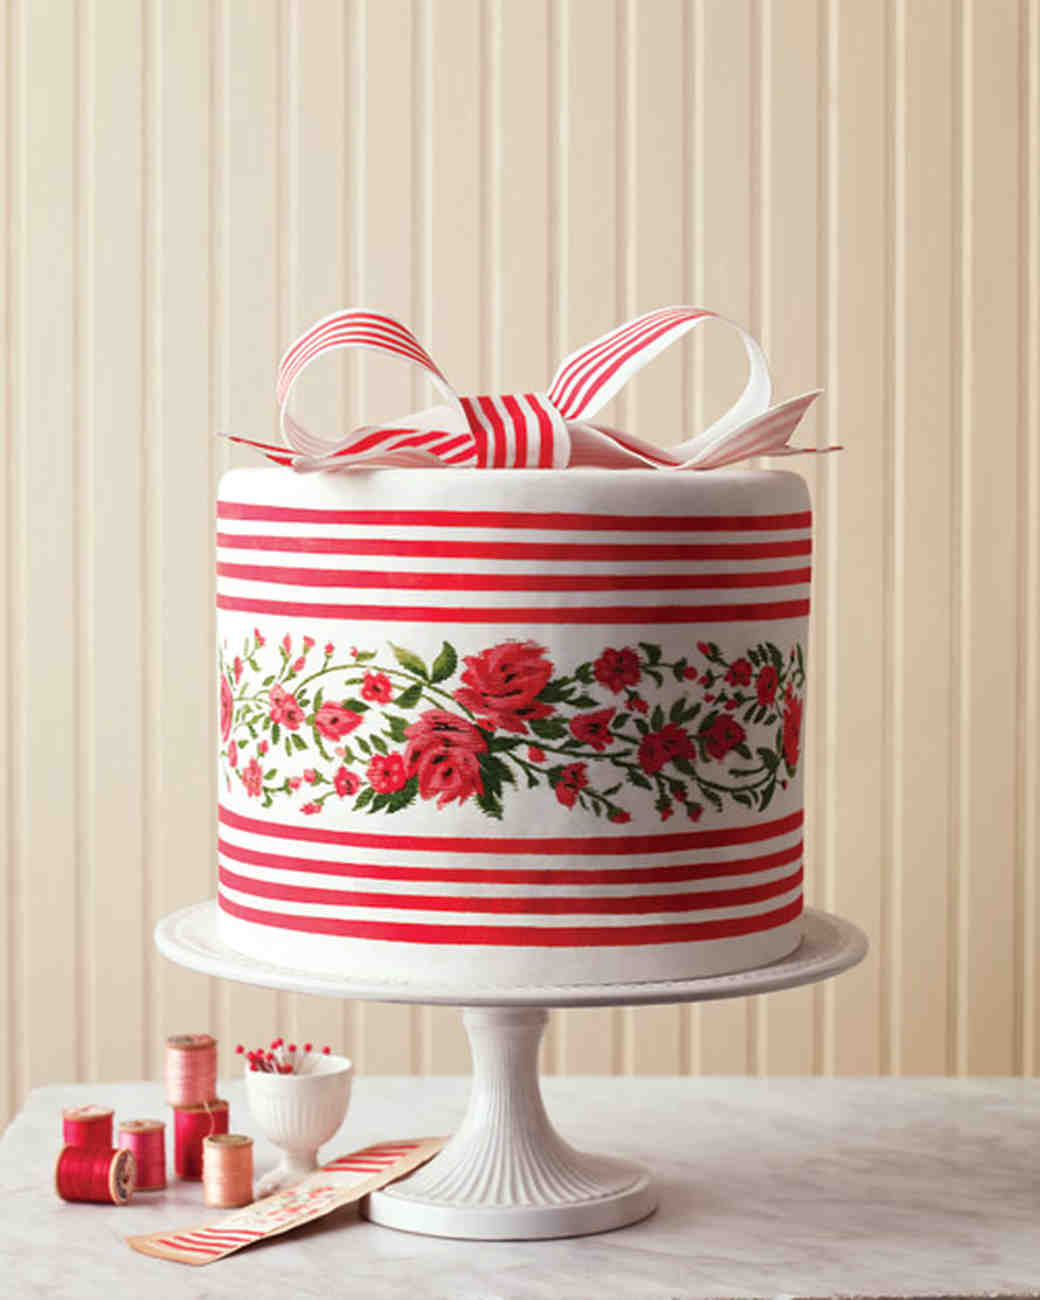 Red Striped Wedding Cake with Floral Details